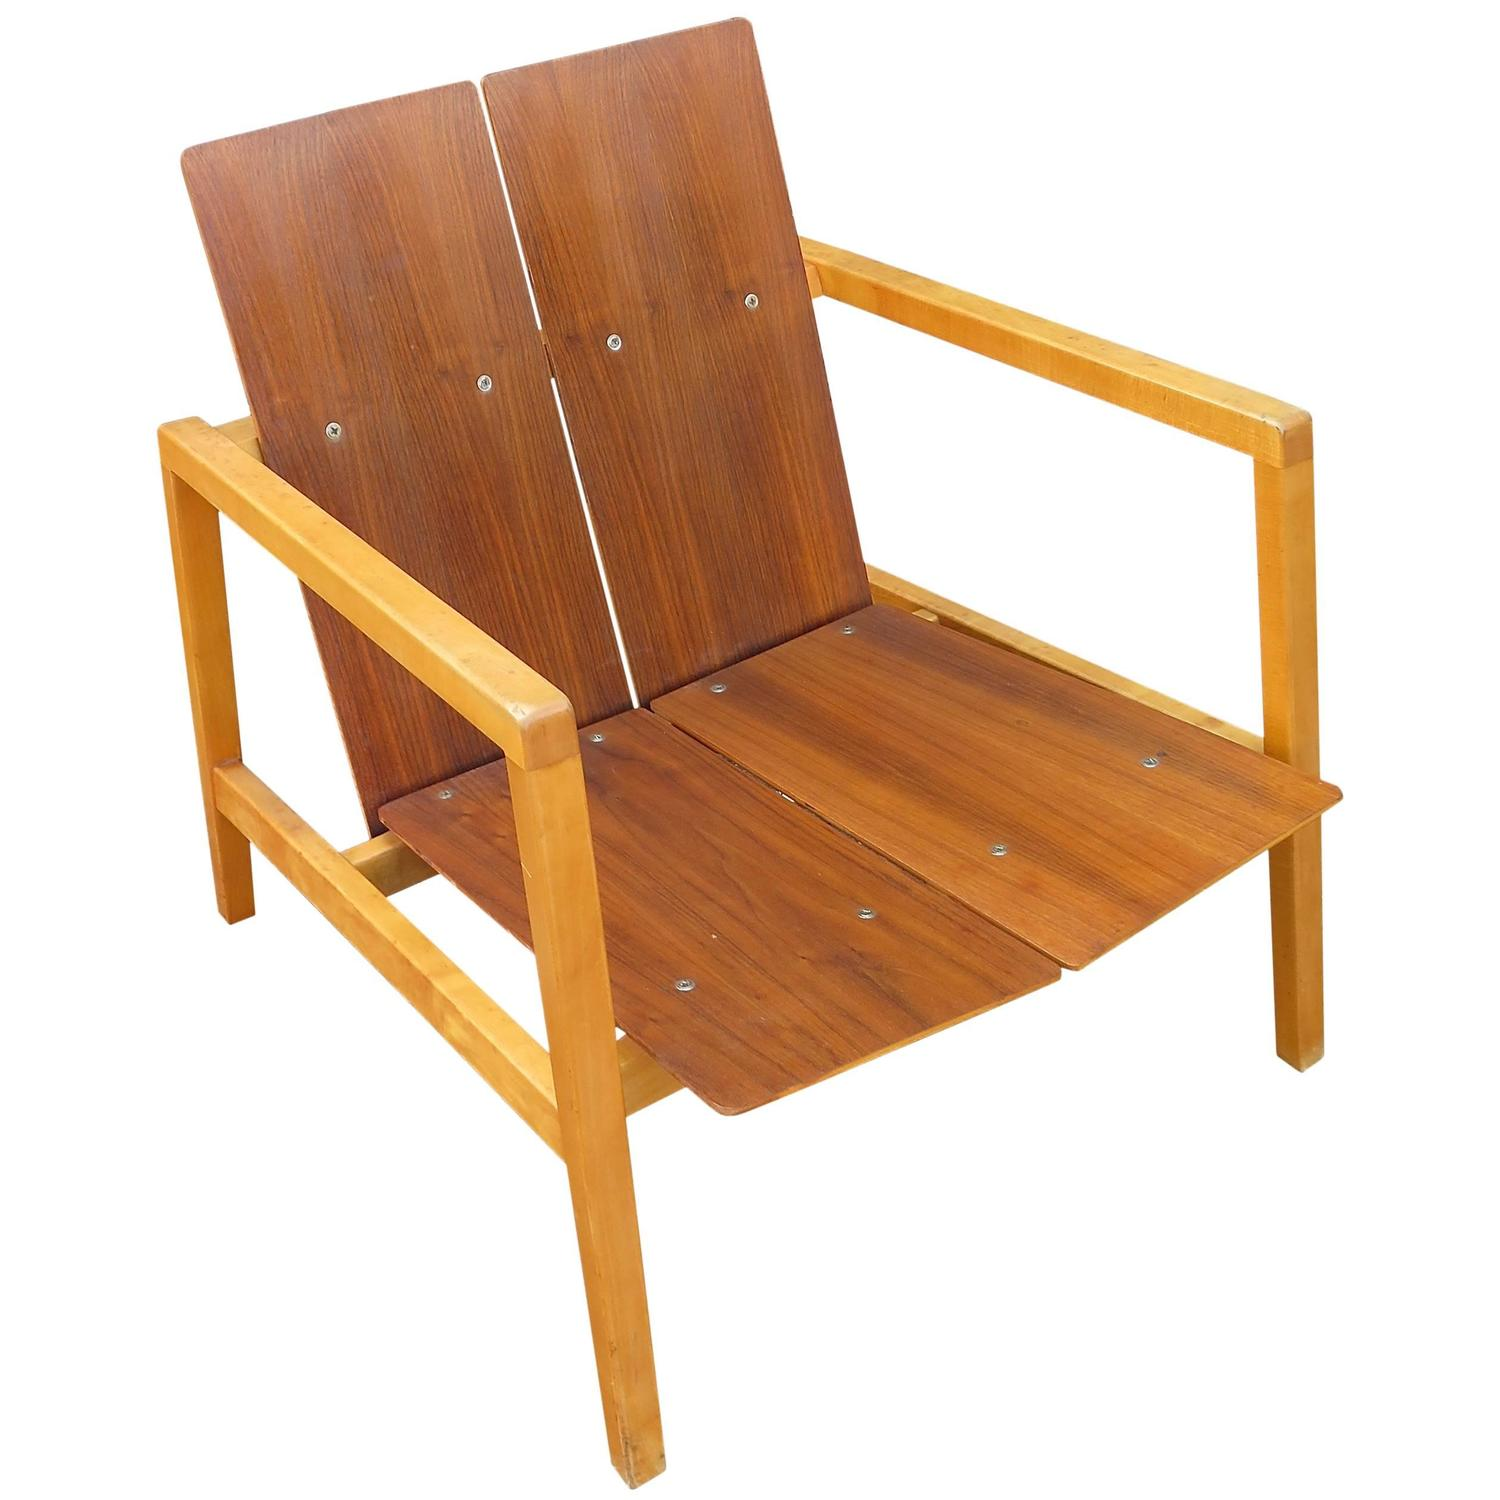 1950 Lewis Butler For Knoll Lounge Chair For Sale At 1stdibs